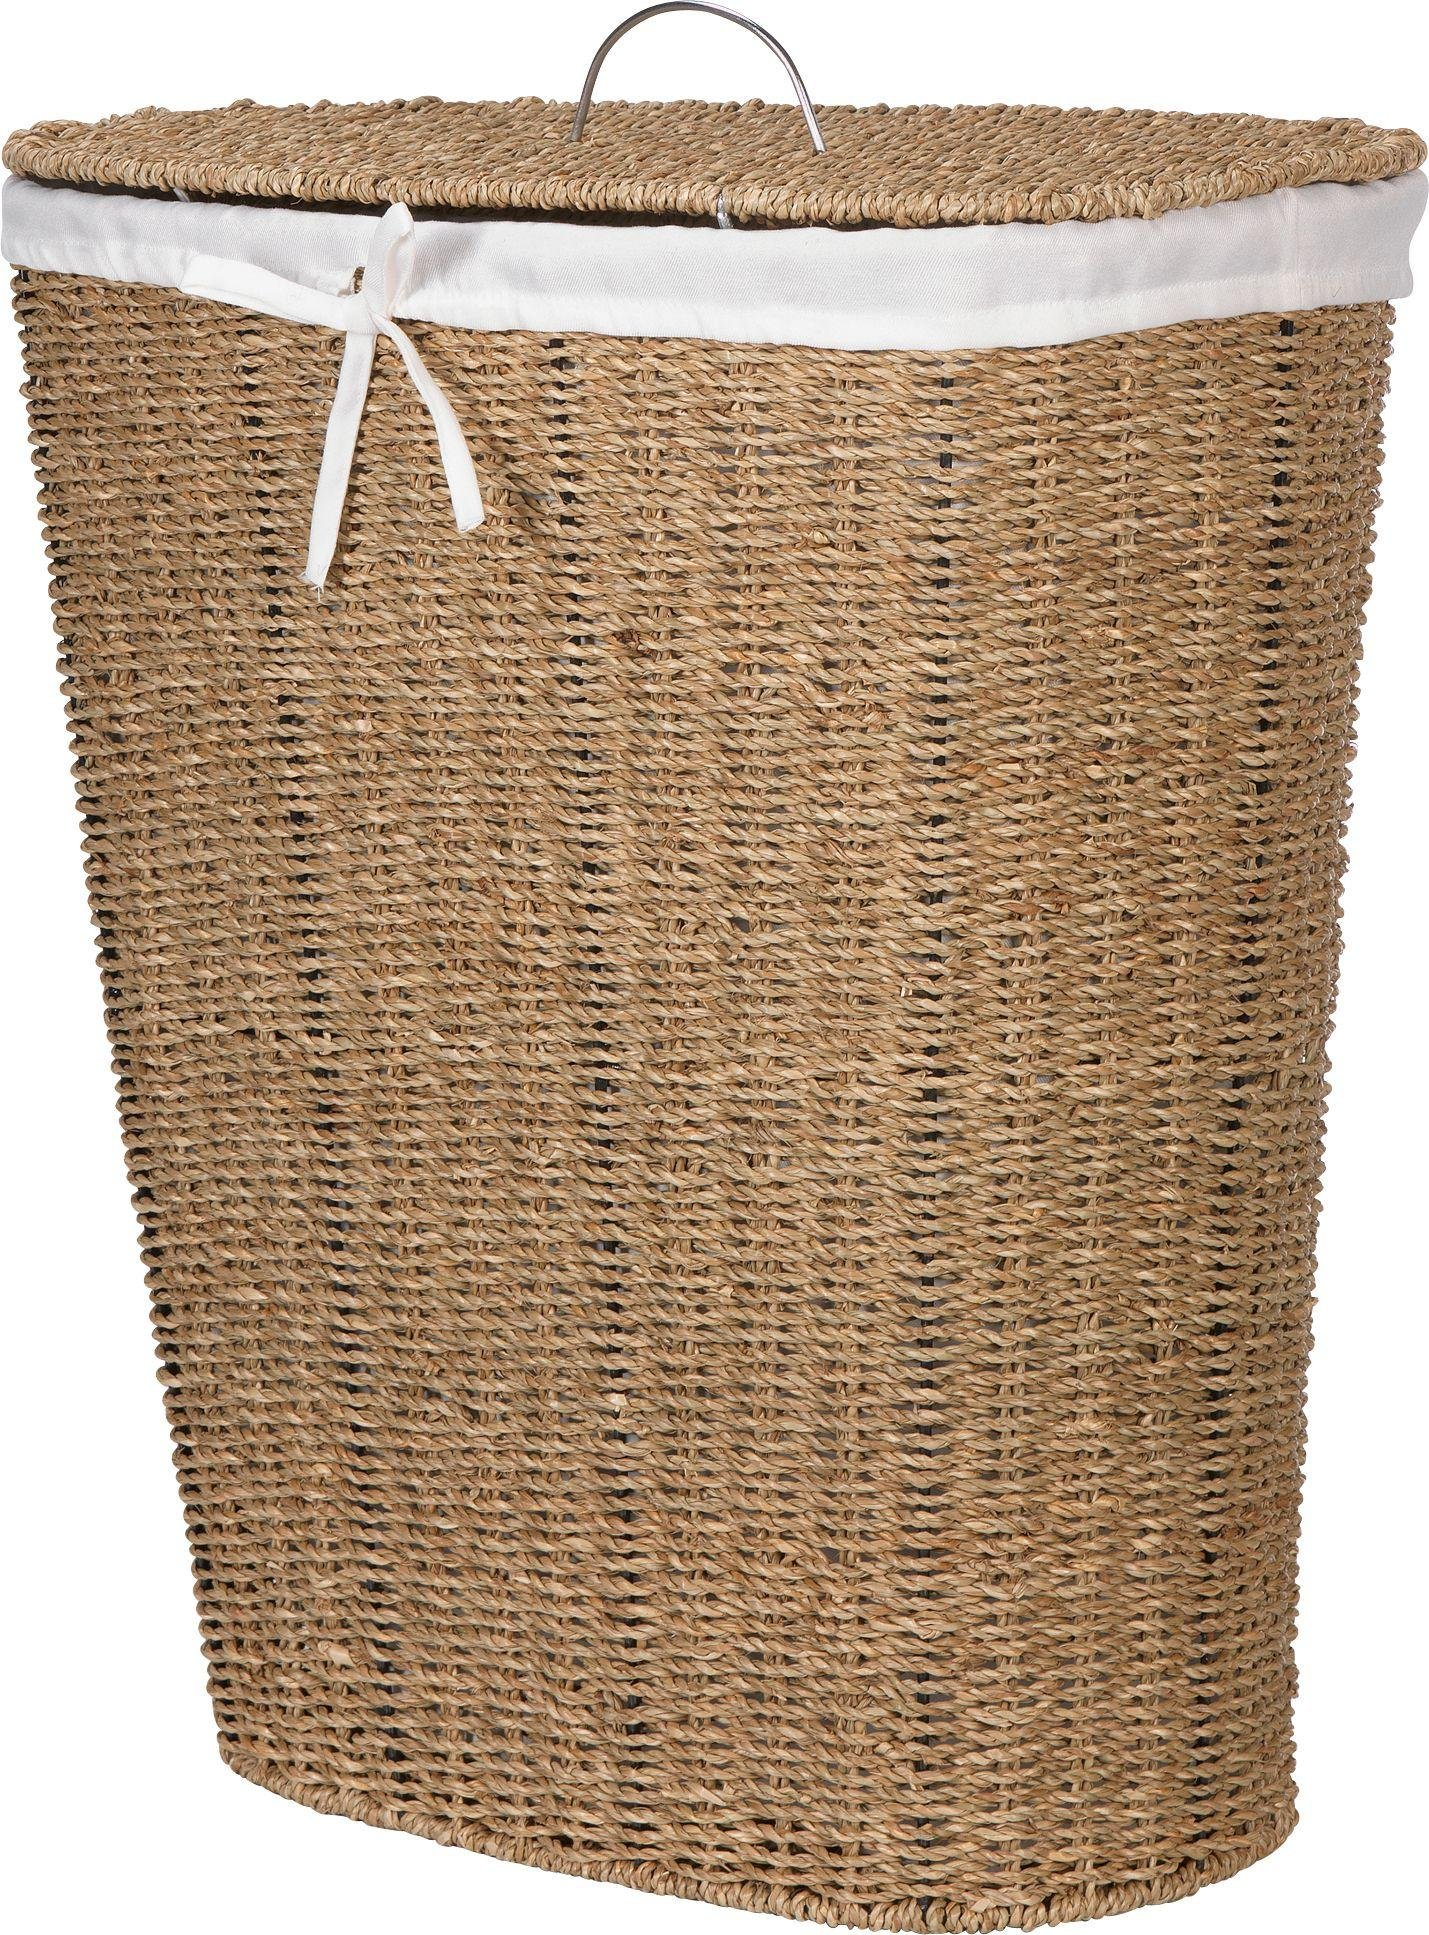 home-laundry-basket-natural-seagrass